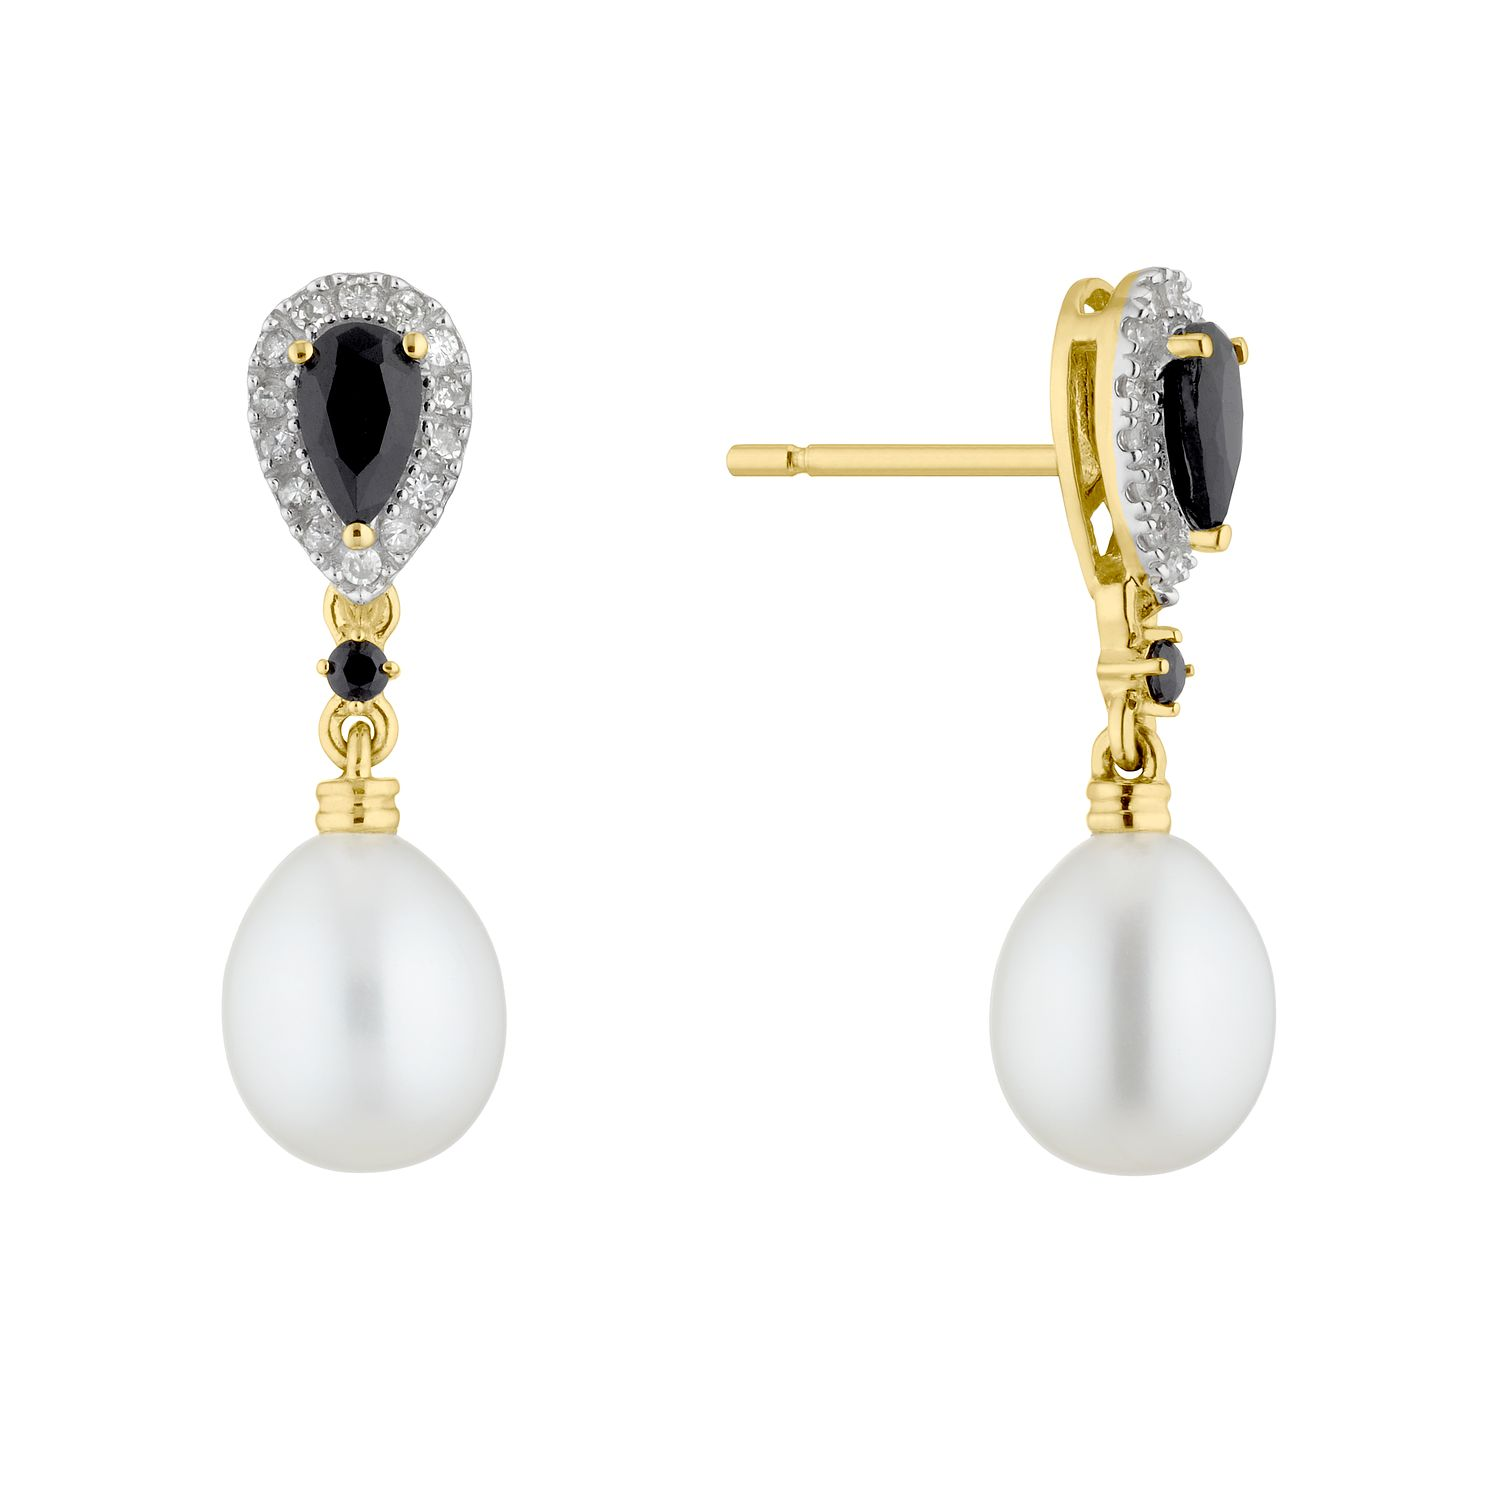 9ct Gold Freshwater Pearl, Sapphire & Diamond Earrings - Product number 4865537